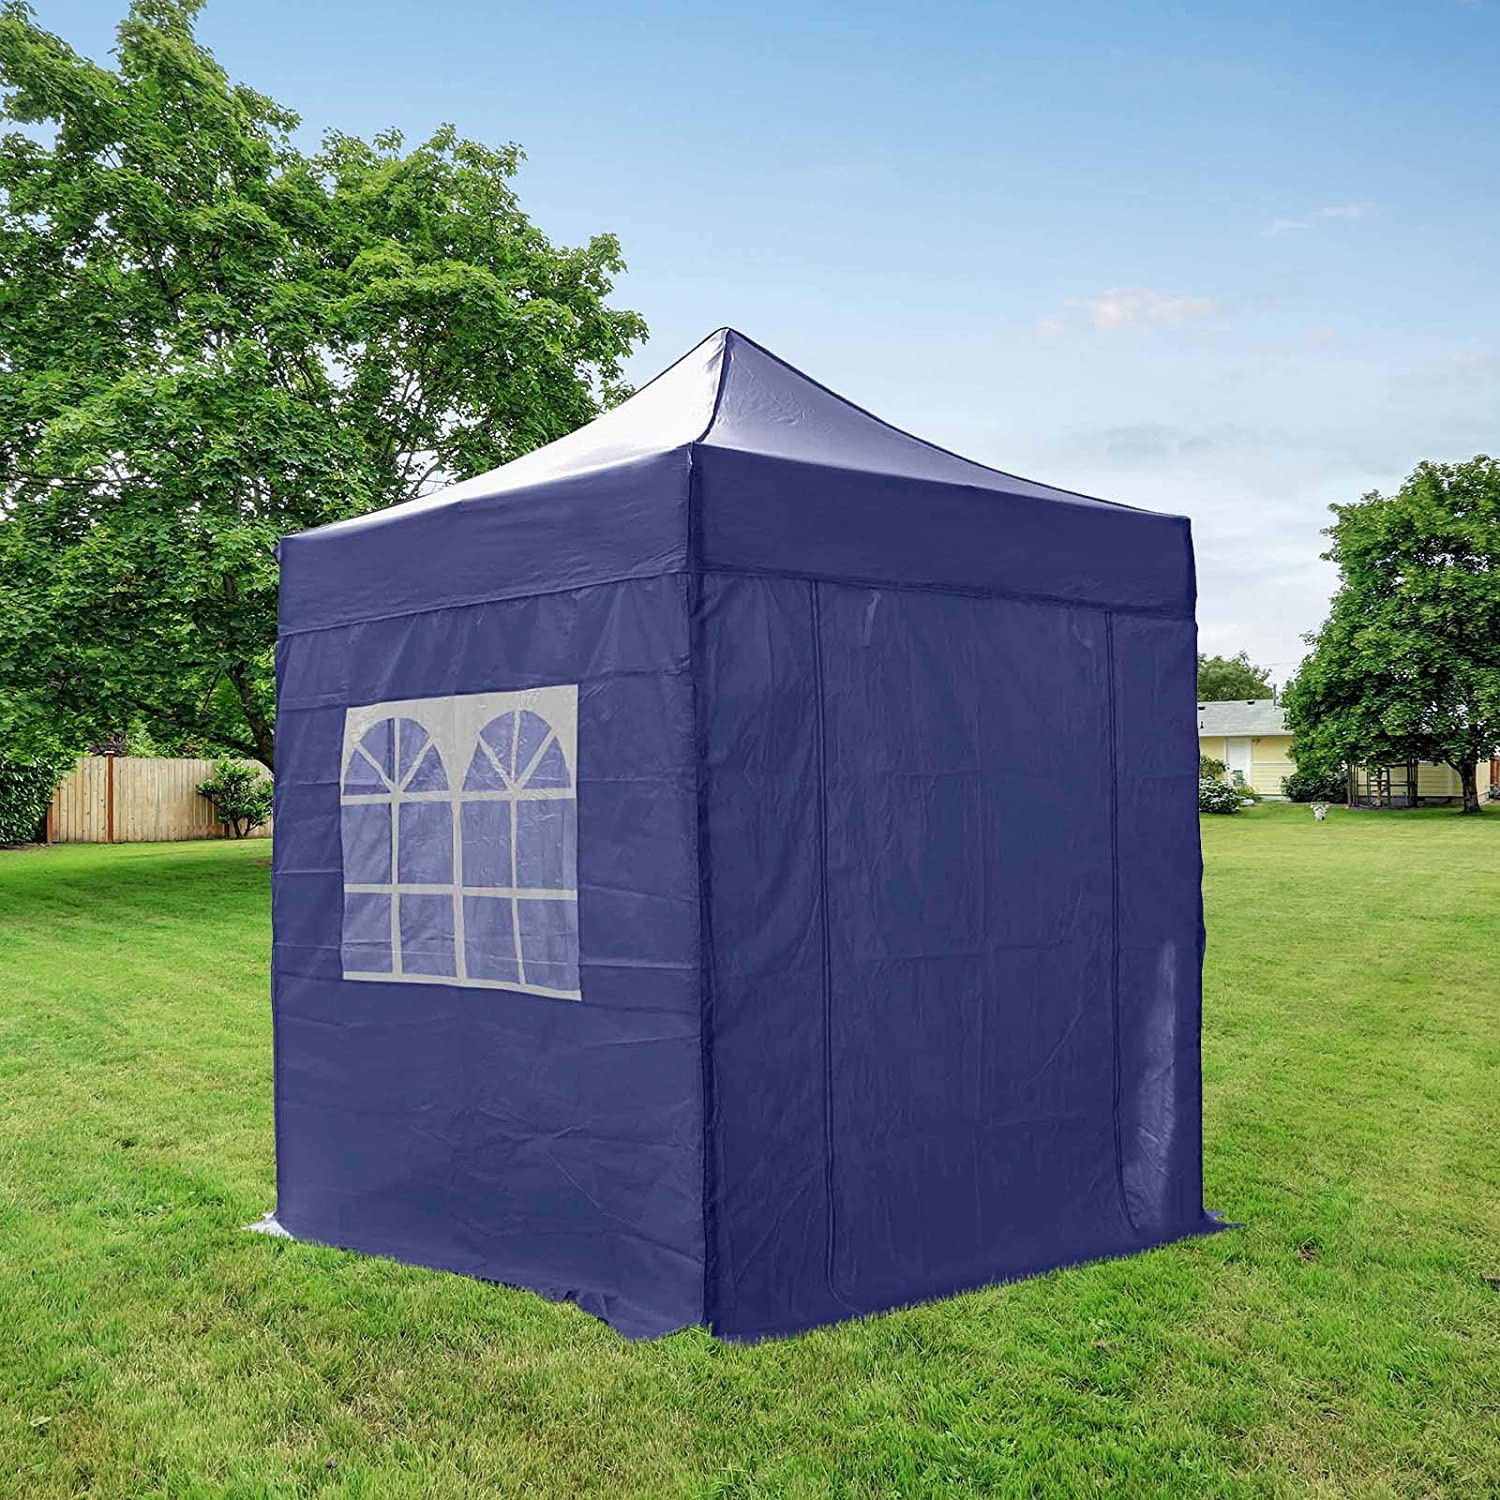 AIRWAVE SJ062301B - Gazebo, Color Azul: Amazon.es: Jardín